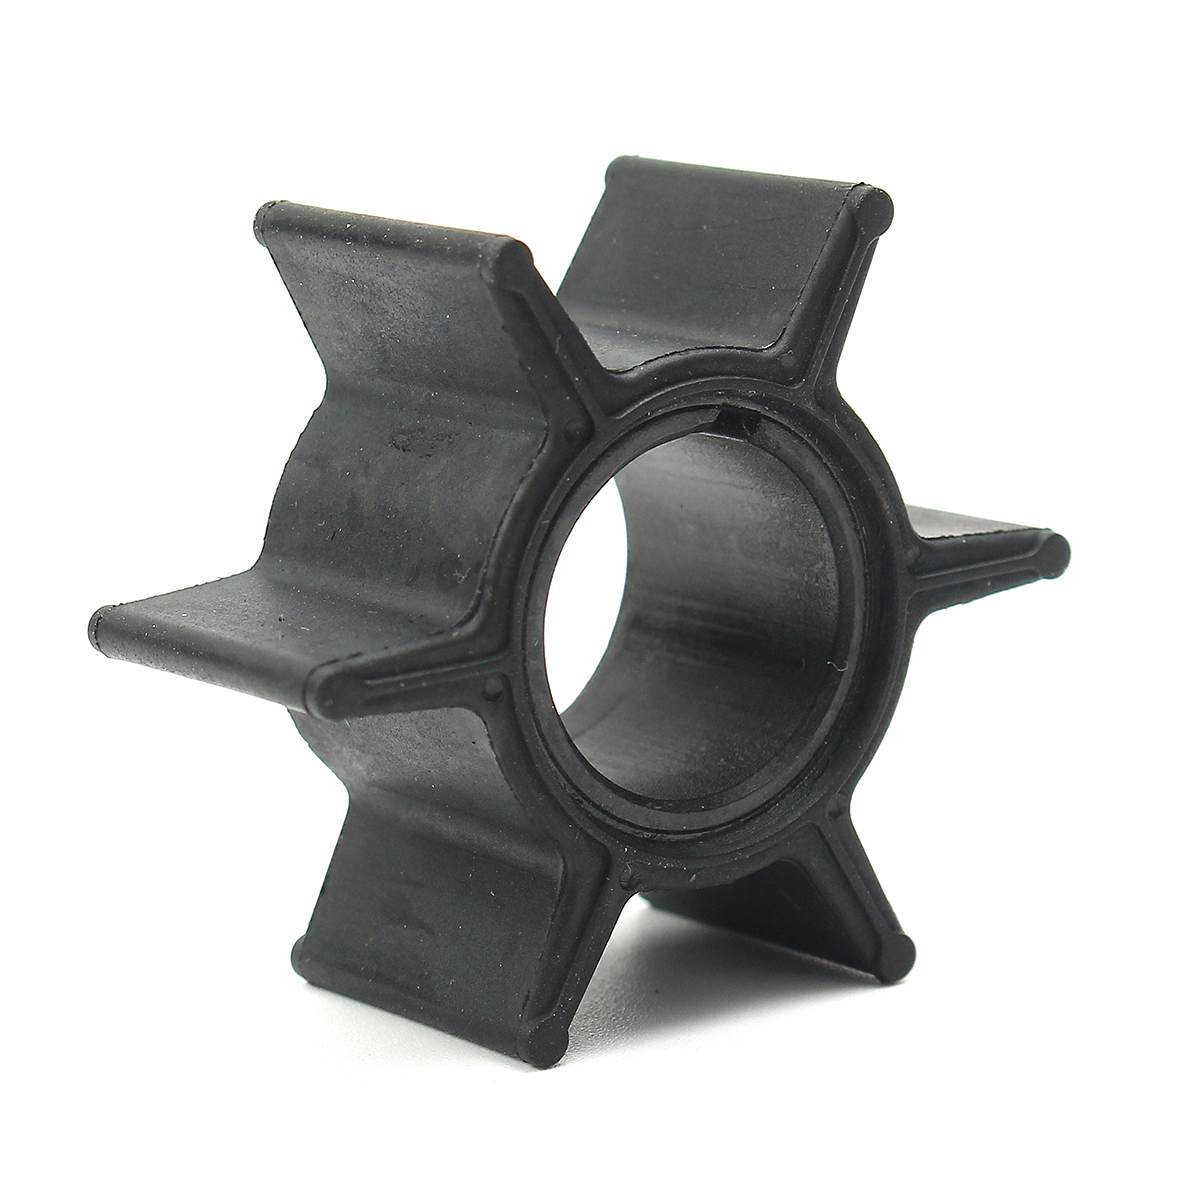 Water Pump Impeller For Tohatsu &Mercury 25/30/40HP Outboard Motor 345-65021-0 / 18-8923 Black Rubber 6 Blades Boat Parts